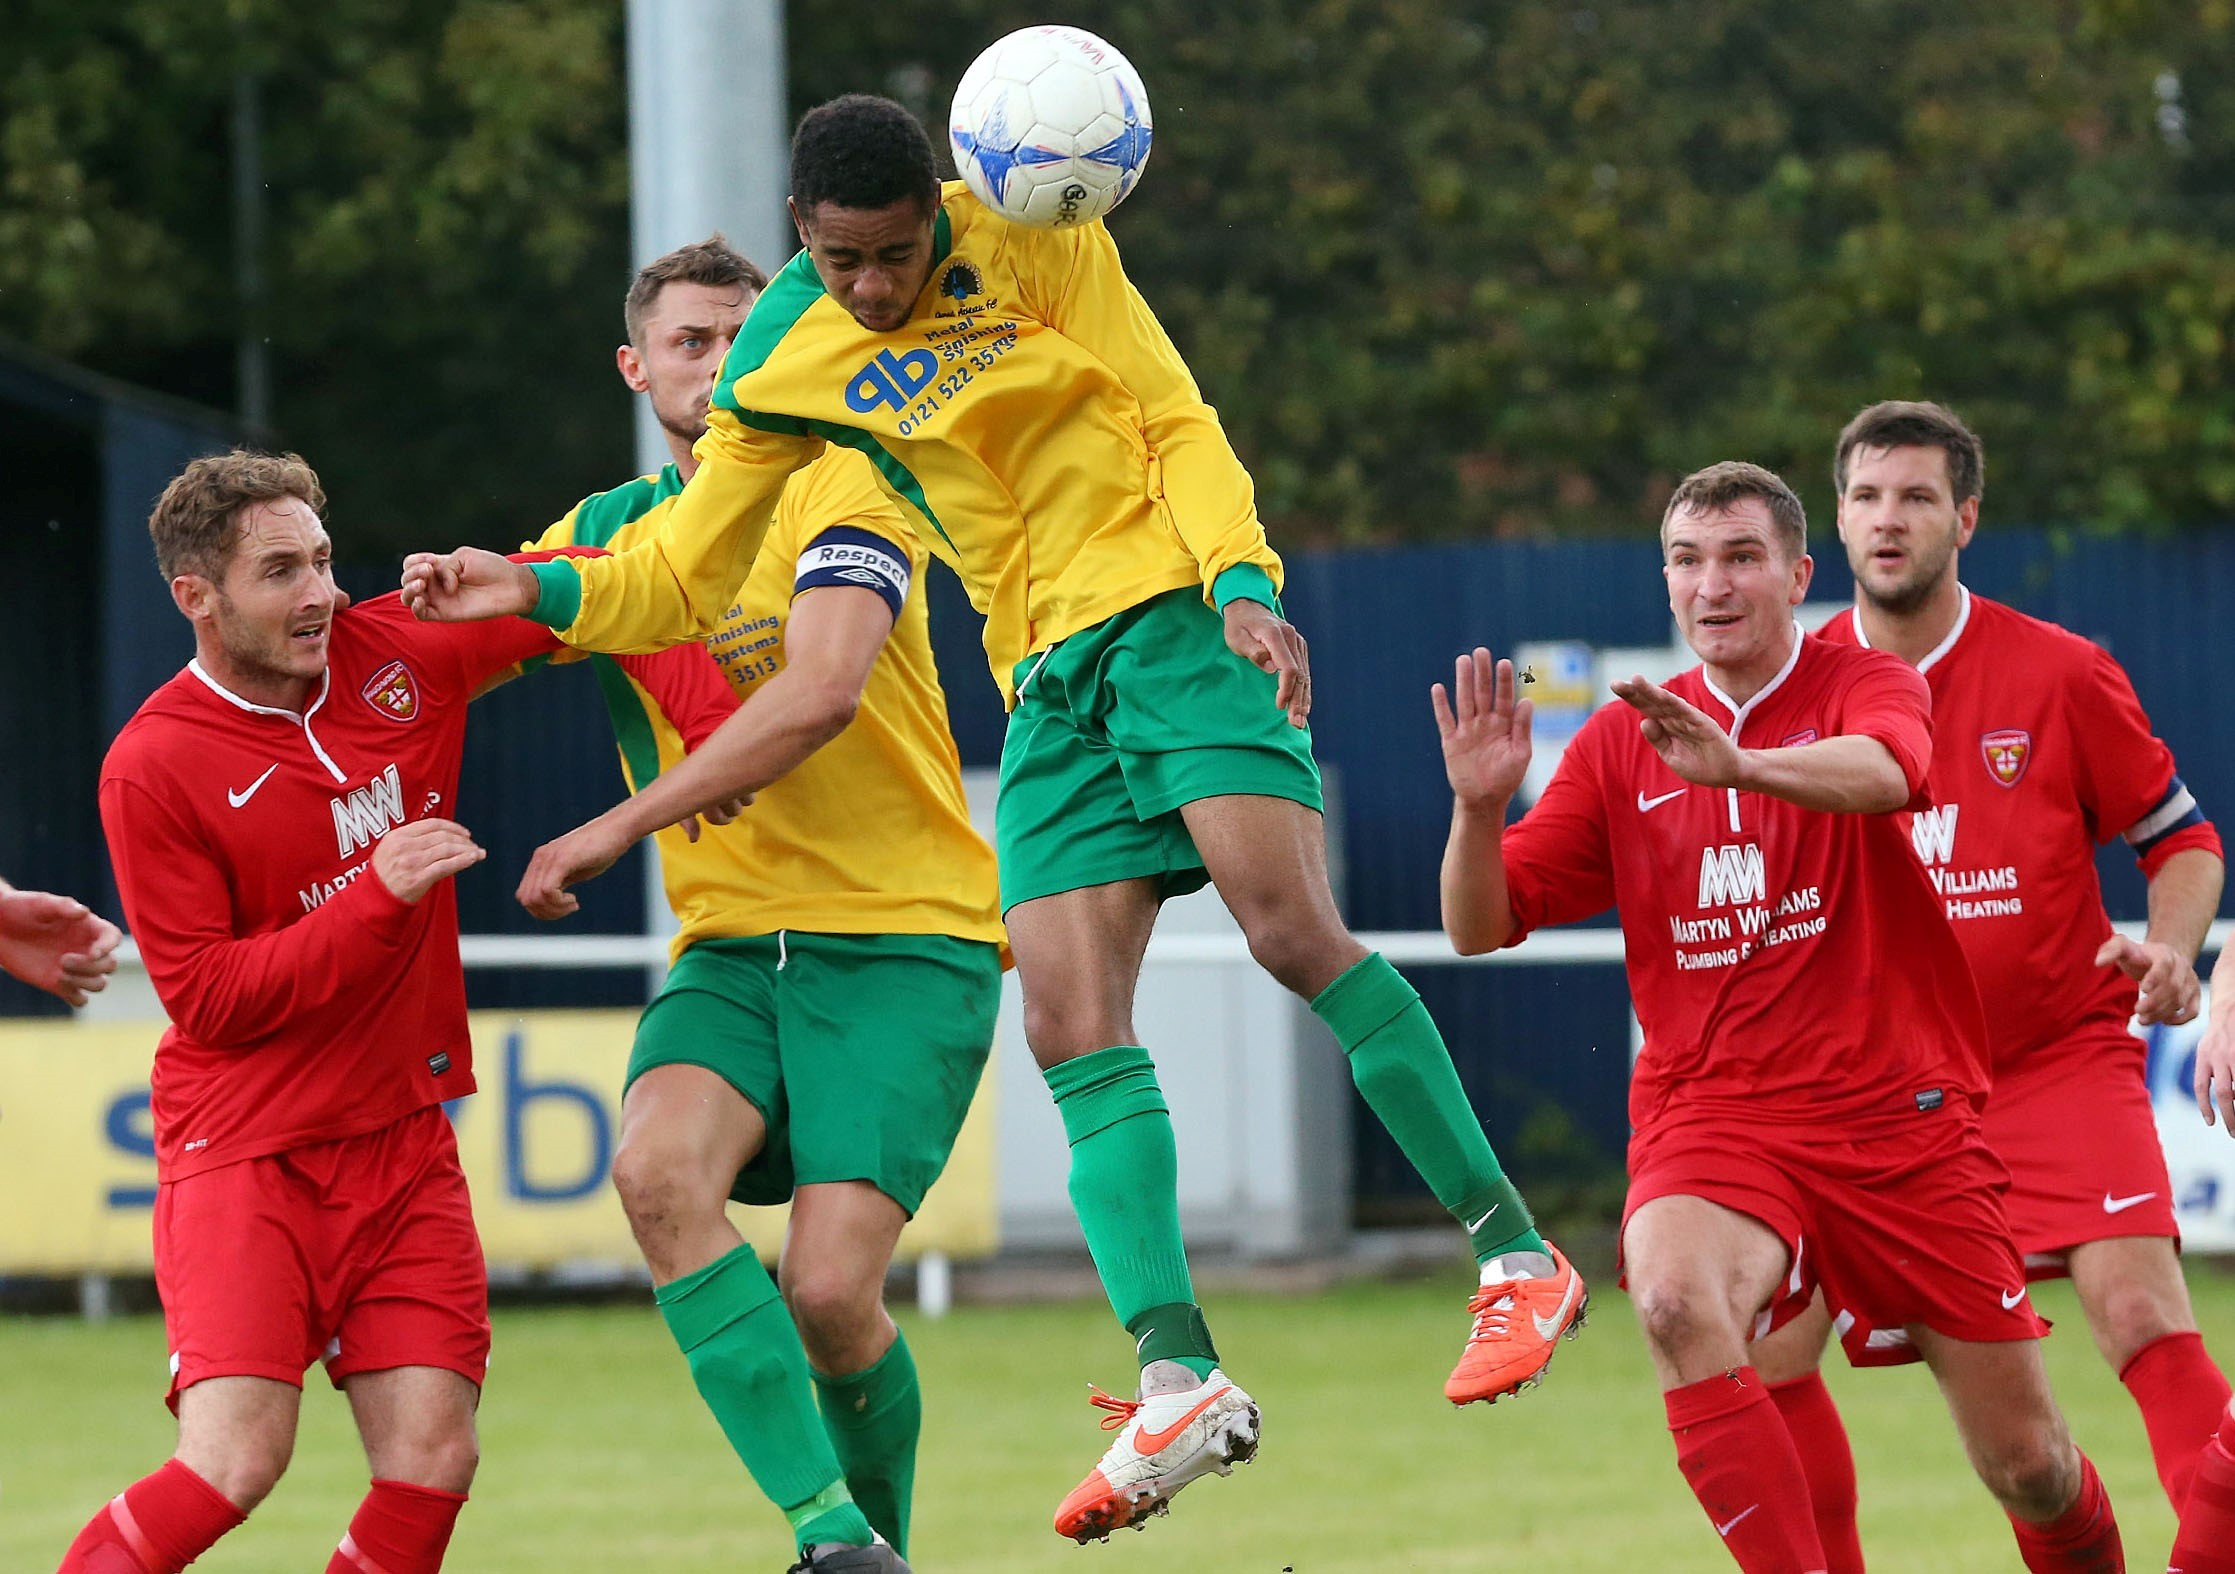 l Gornal Athletic's Rion Frances-Mills in action against Haughmond.